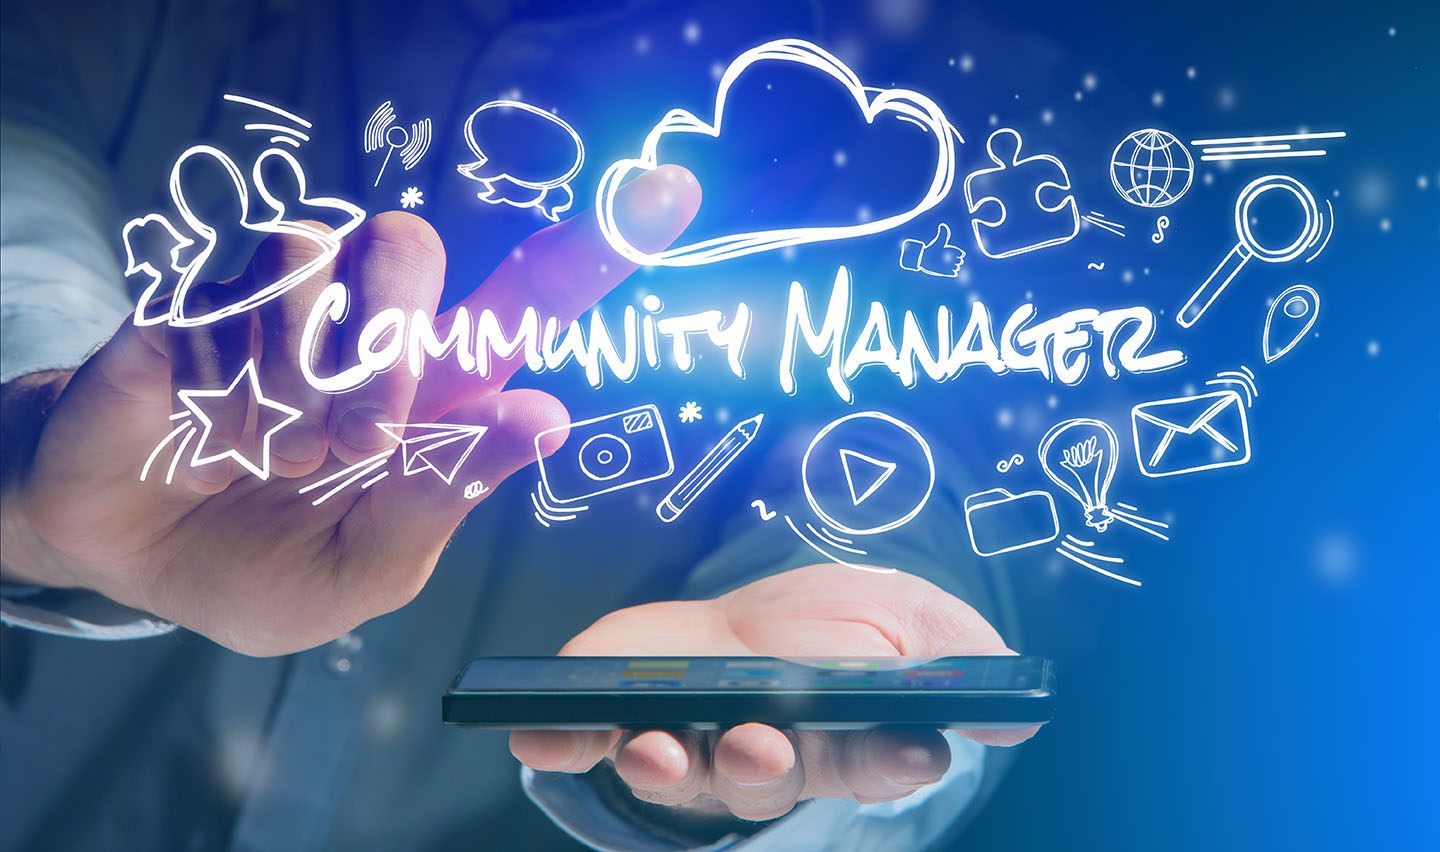 community Manager en Panama